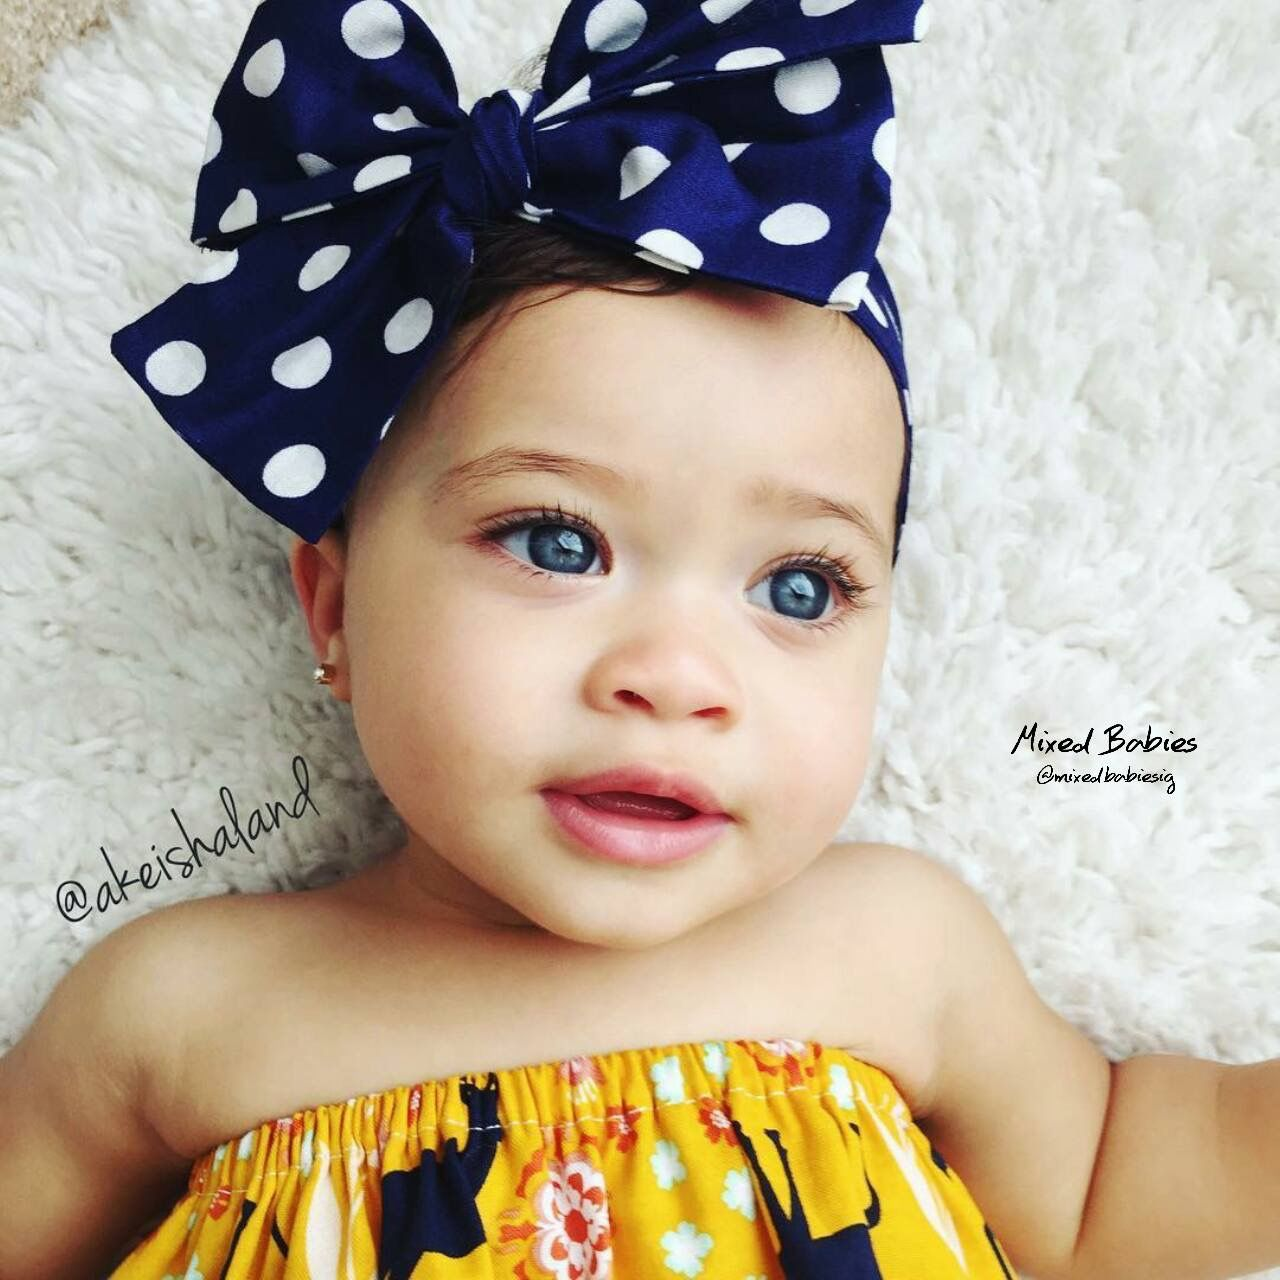 beautiful baby girl | mixed babies | pinterest | beautiful baby girl